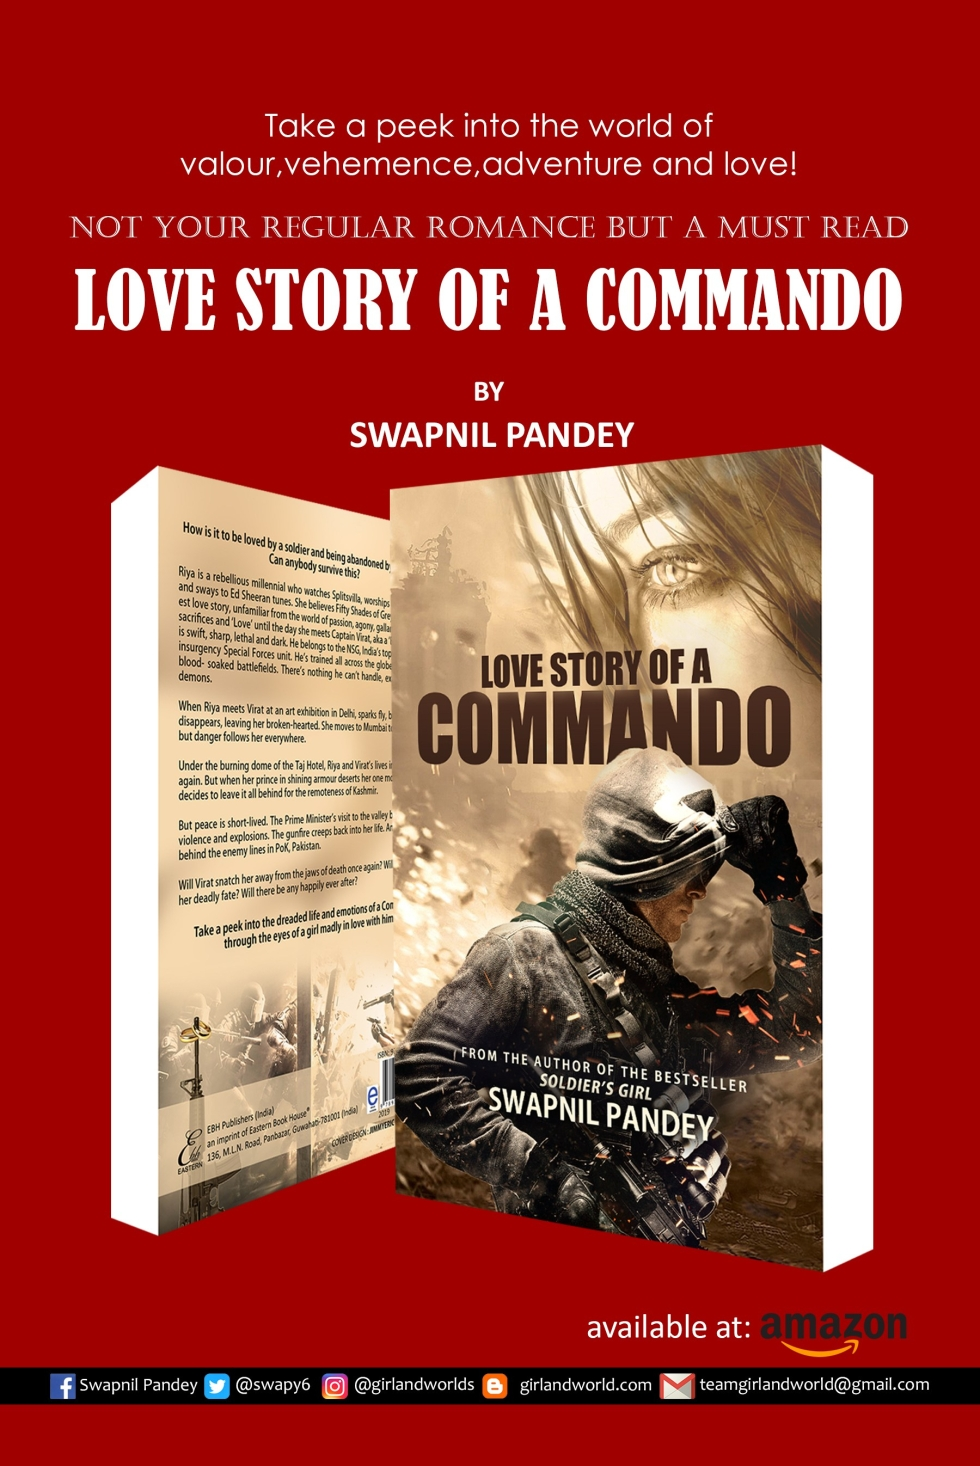 army novel shiv aroor shoot dive fly india'a most fearless soldier' girl military story soldier novel best passion courage love story of a commando, love story valentine day gift book Indian writing amazon best seller Indian army officer wife girlfriend military romance romantic fiction swapnil pandey author best books special forces book para commando love story gift contemporary army marriage indian army nda ima cadet defense aspirant